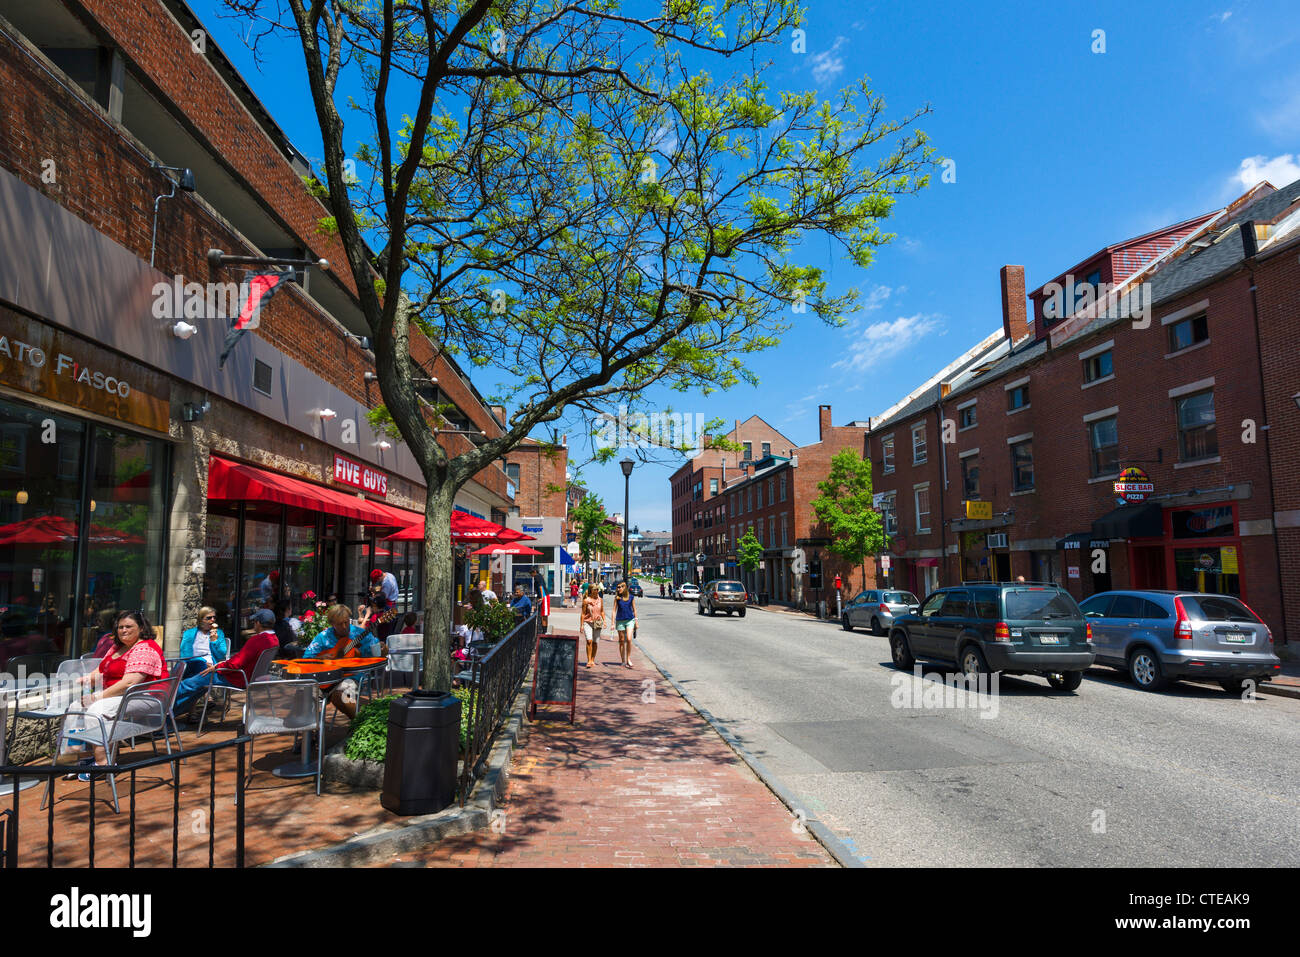 Portland Maine Street Stock Photos & Portland Maine Street Stock ...